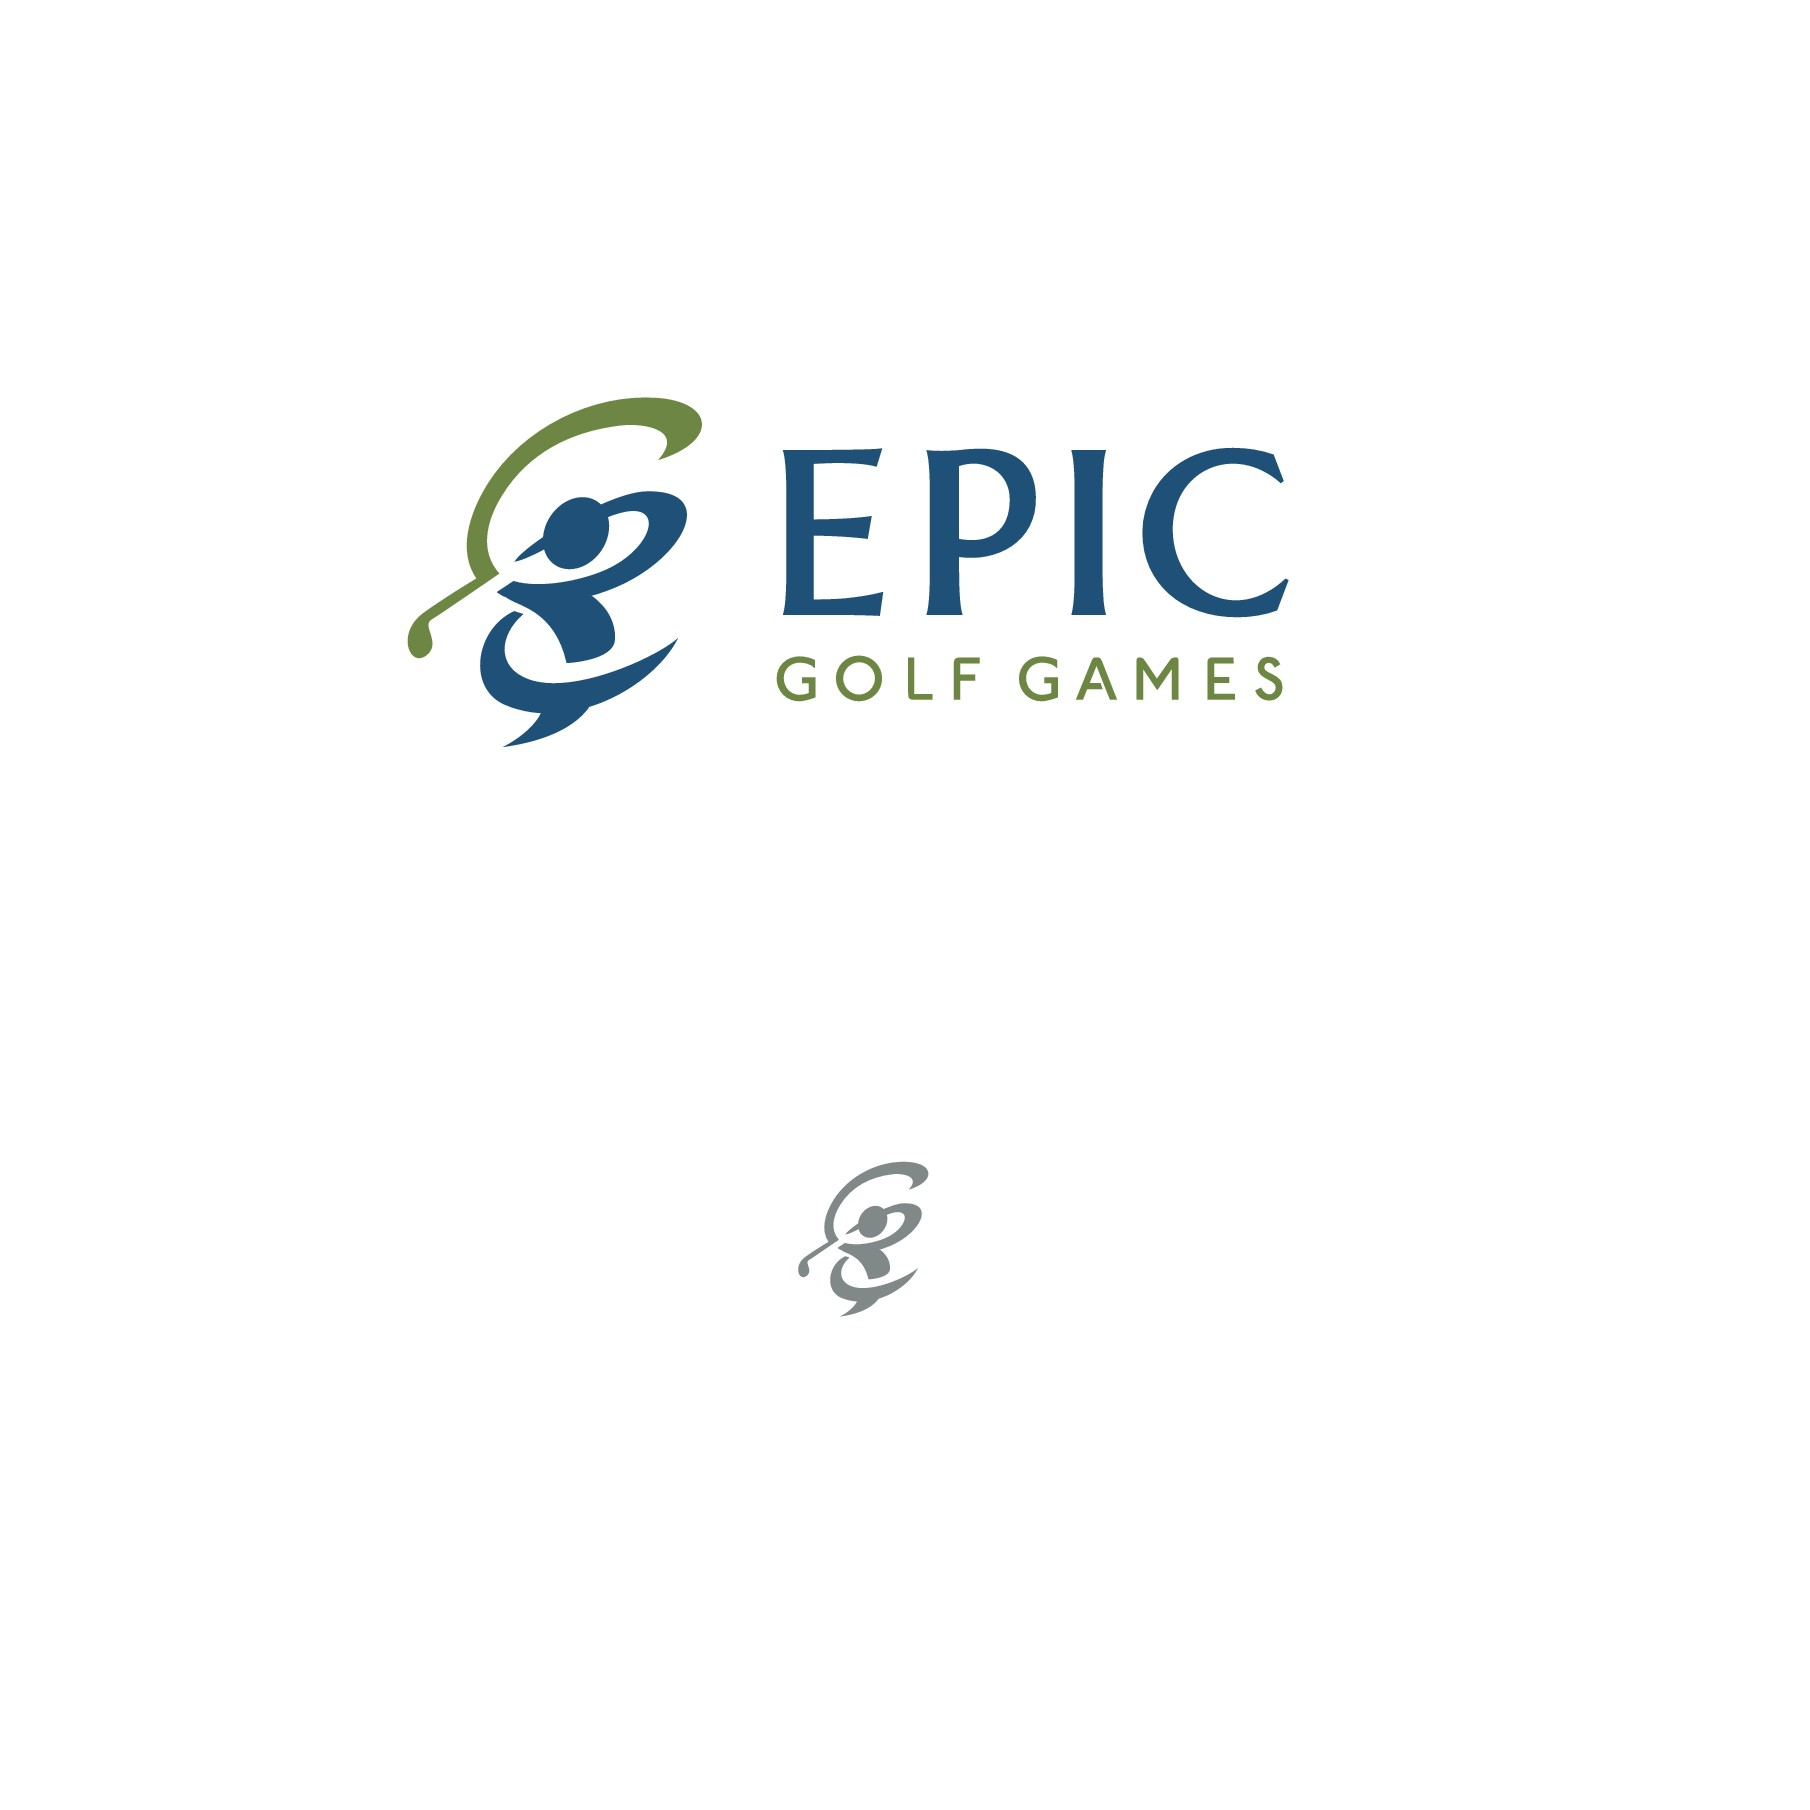 EPIC Golf Games needs a new brand identity/logo for launch of new products